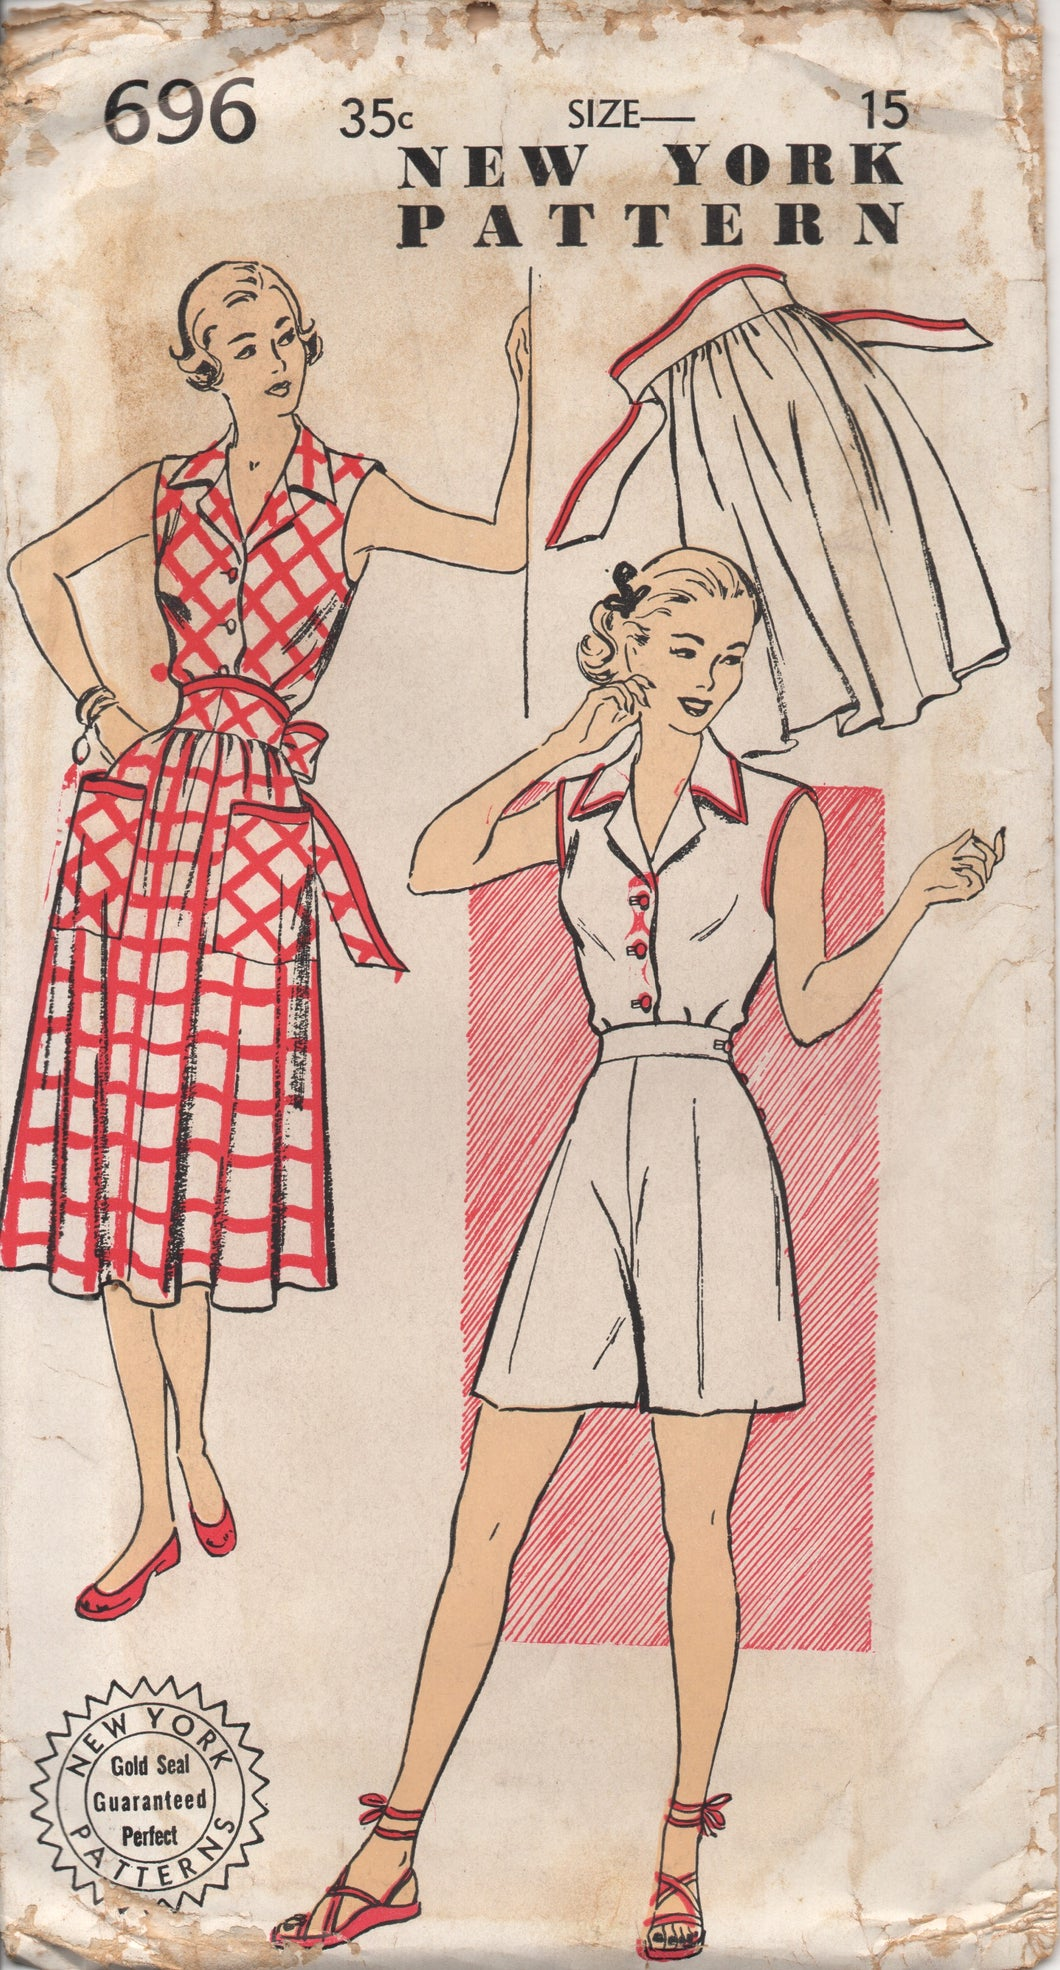 1940's New York Playsuit with Tie-Wrap Skirt and High Waisted Button Shorts - Bust 33